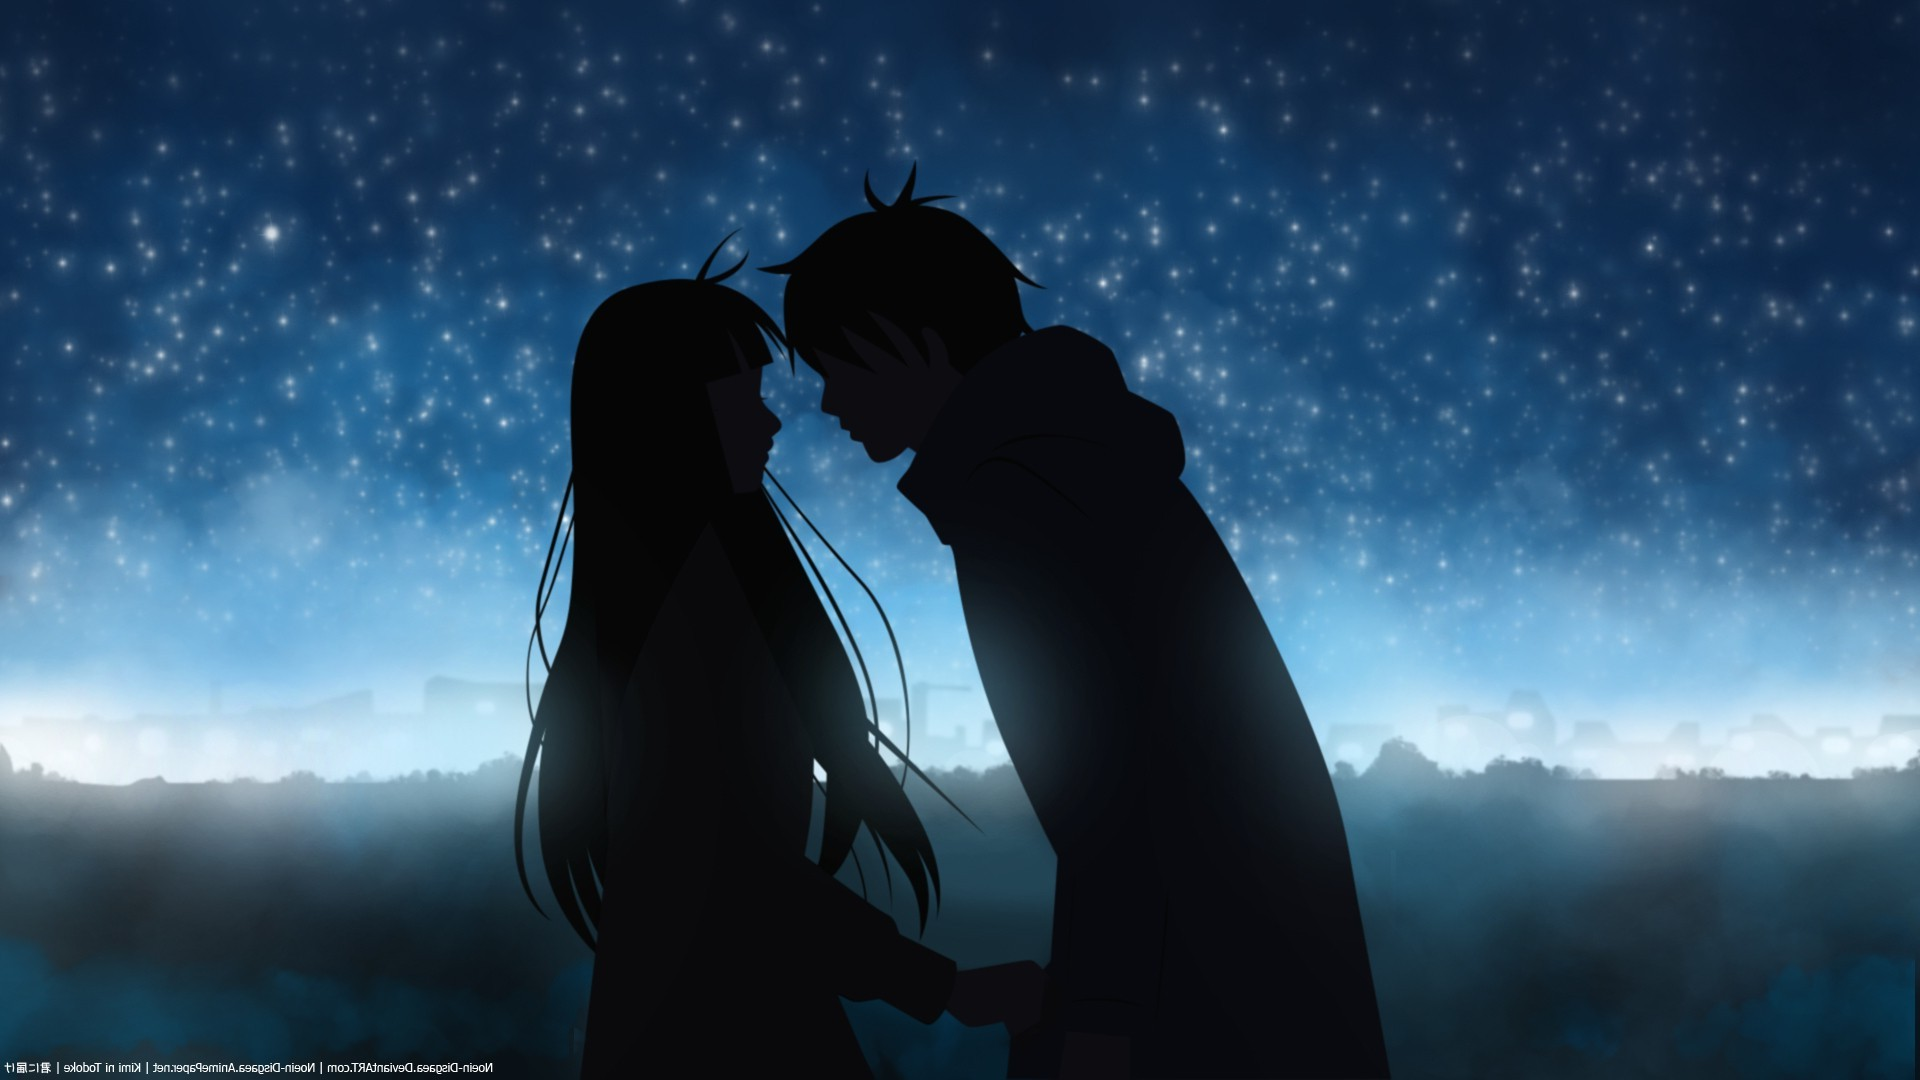 Boy Girl Kiss Hd Wallpaper Kimi Ni Todoke Kazehaya Shouta Kuronuma Sawako Anime